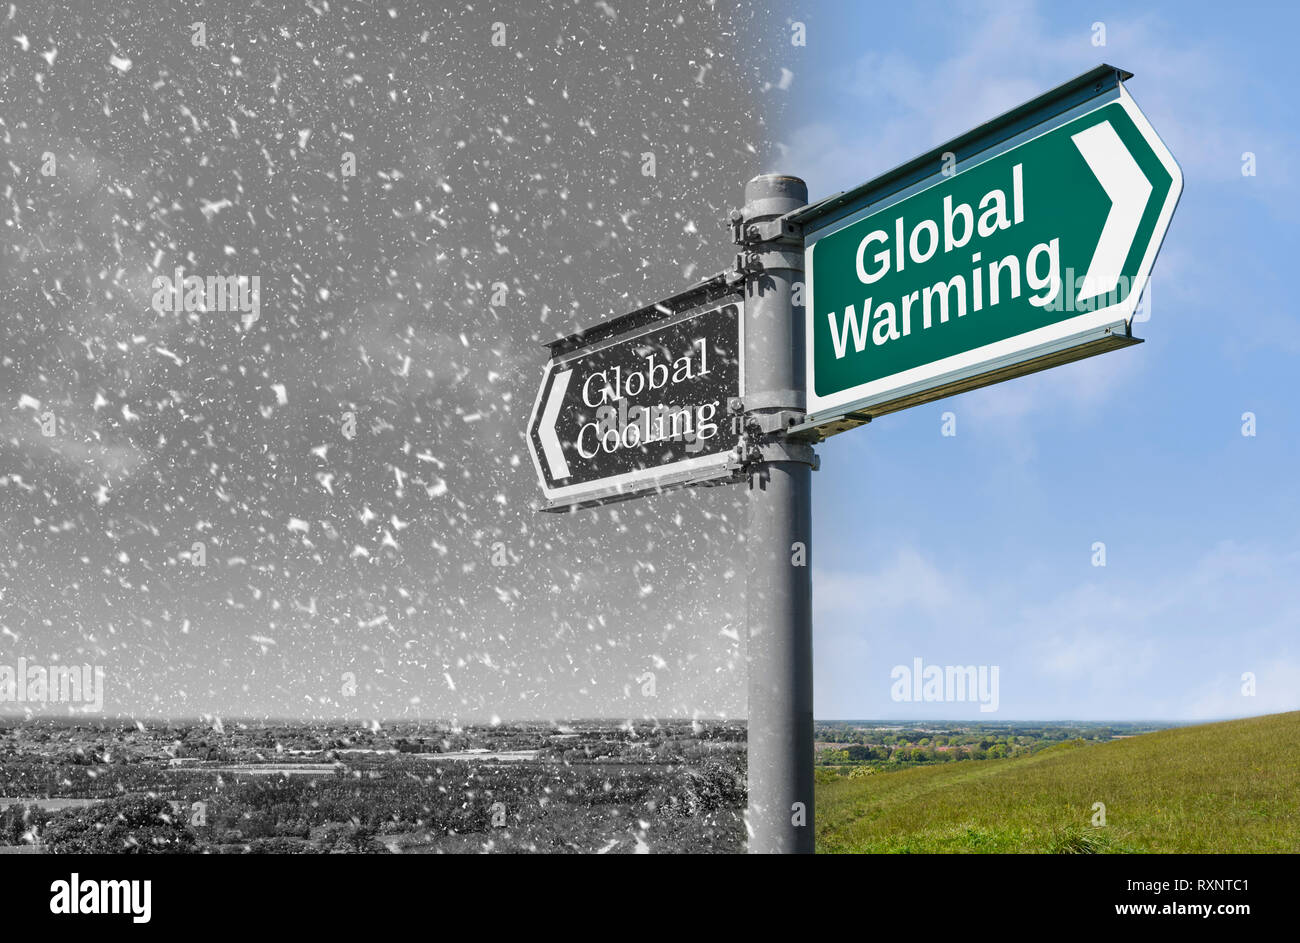 Global warming vs Global Cooling concept sign, showing warmer and cooler weather during a time of climate change. - Stock Image